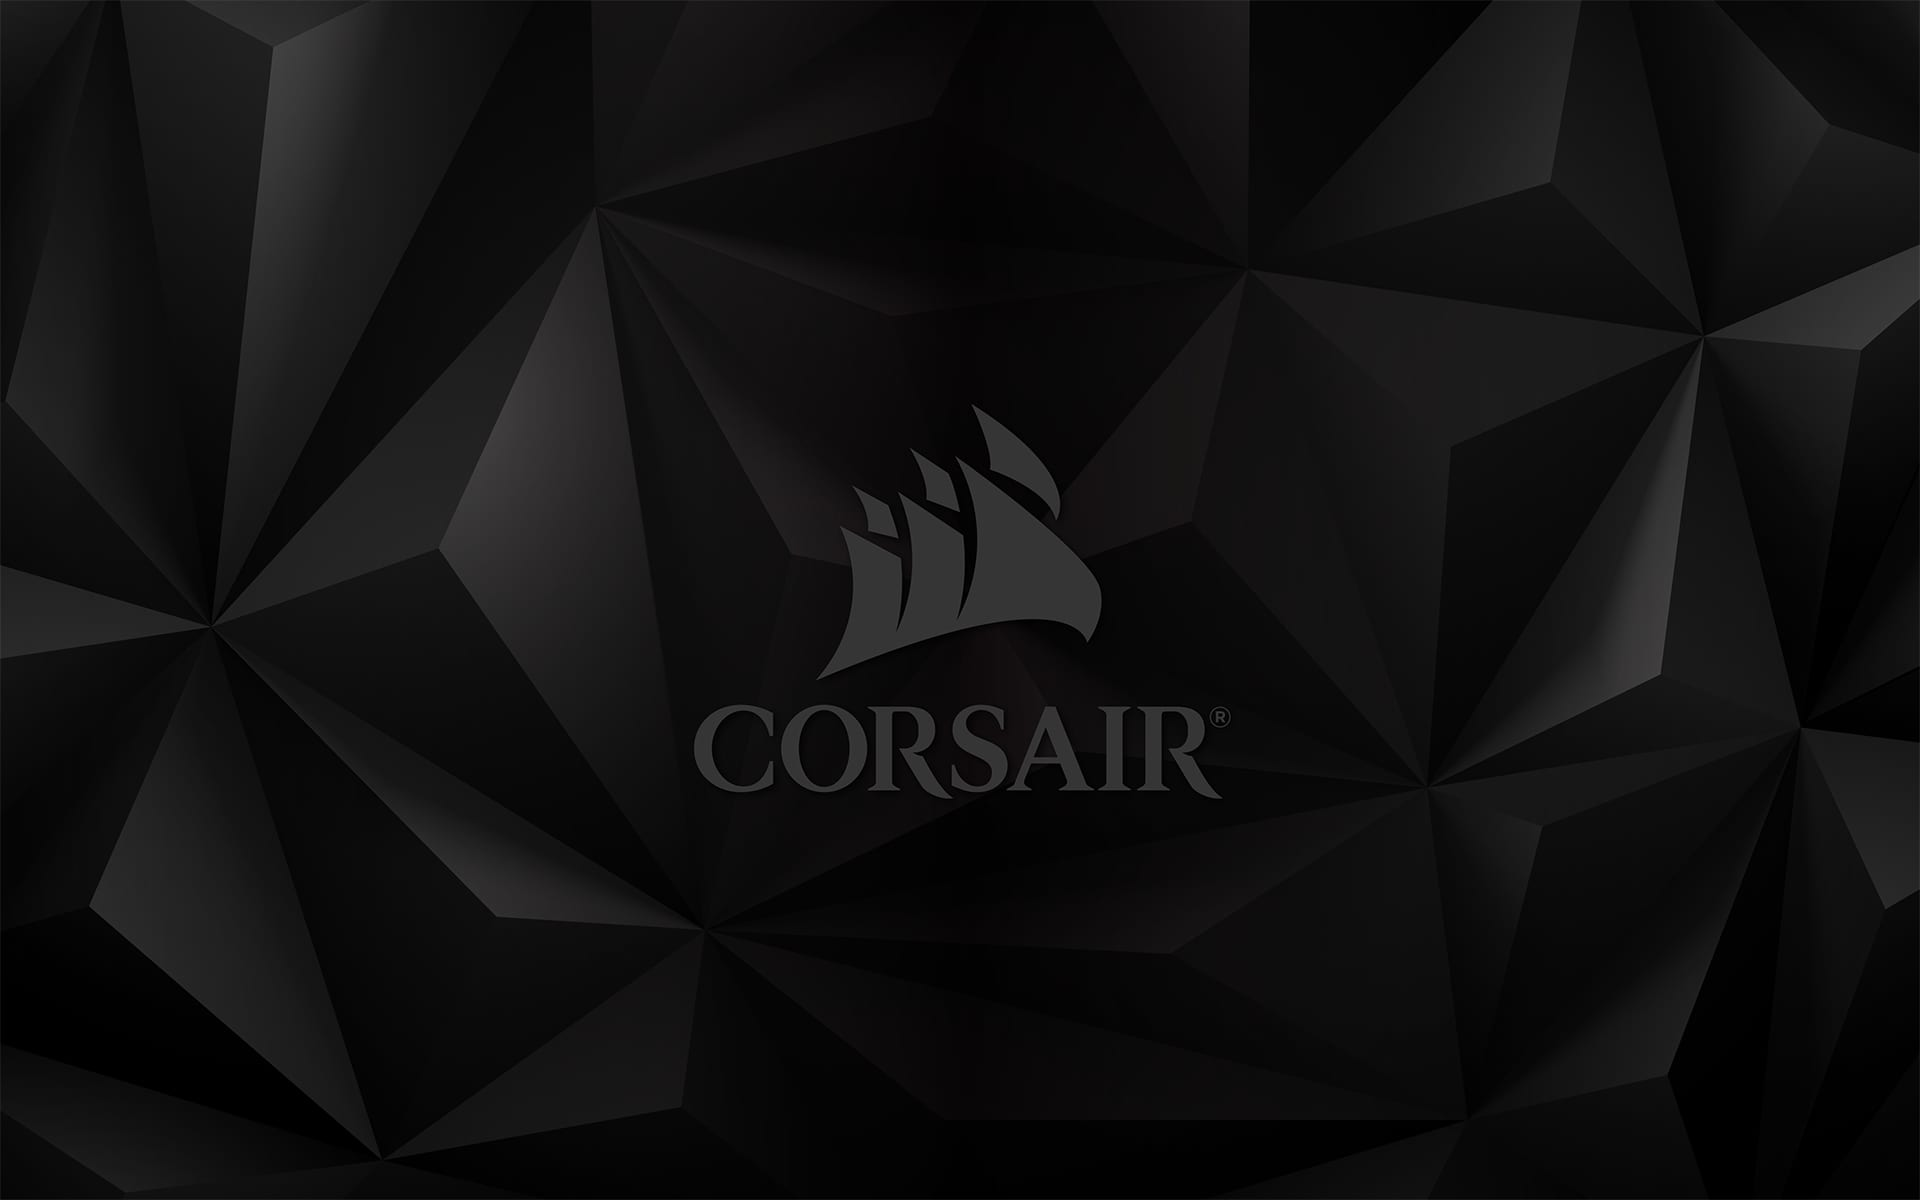 New 3d Wallpapers Free Download For Mobile Corsair Wallpaper